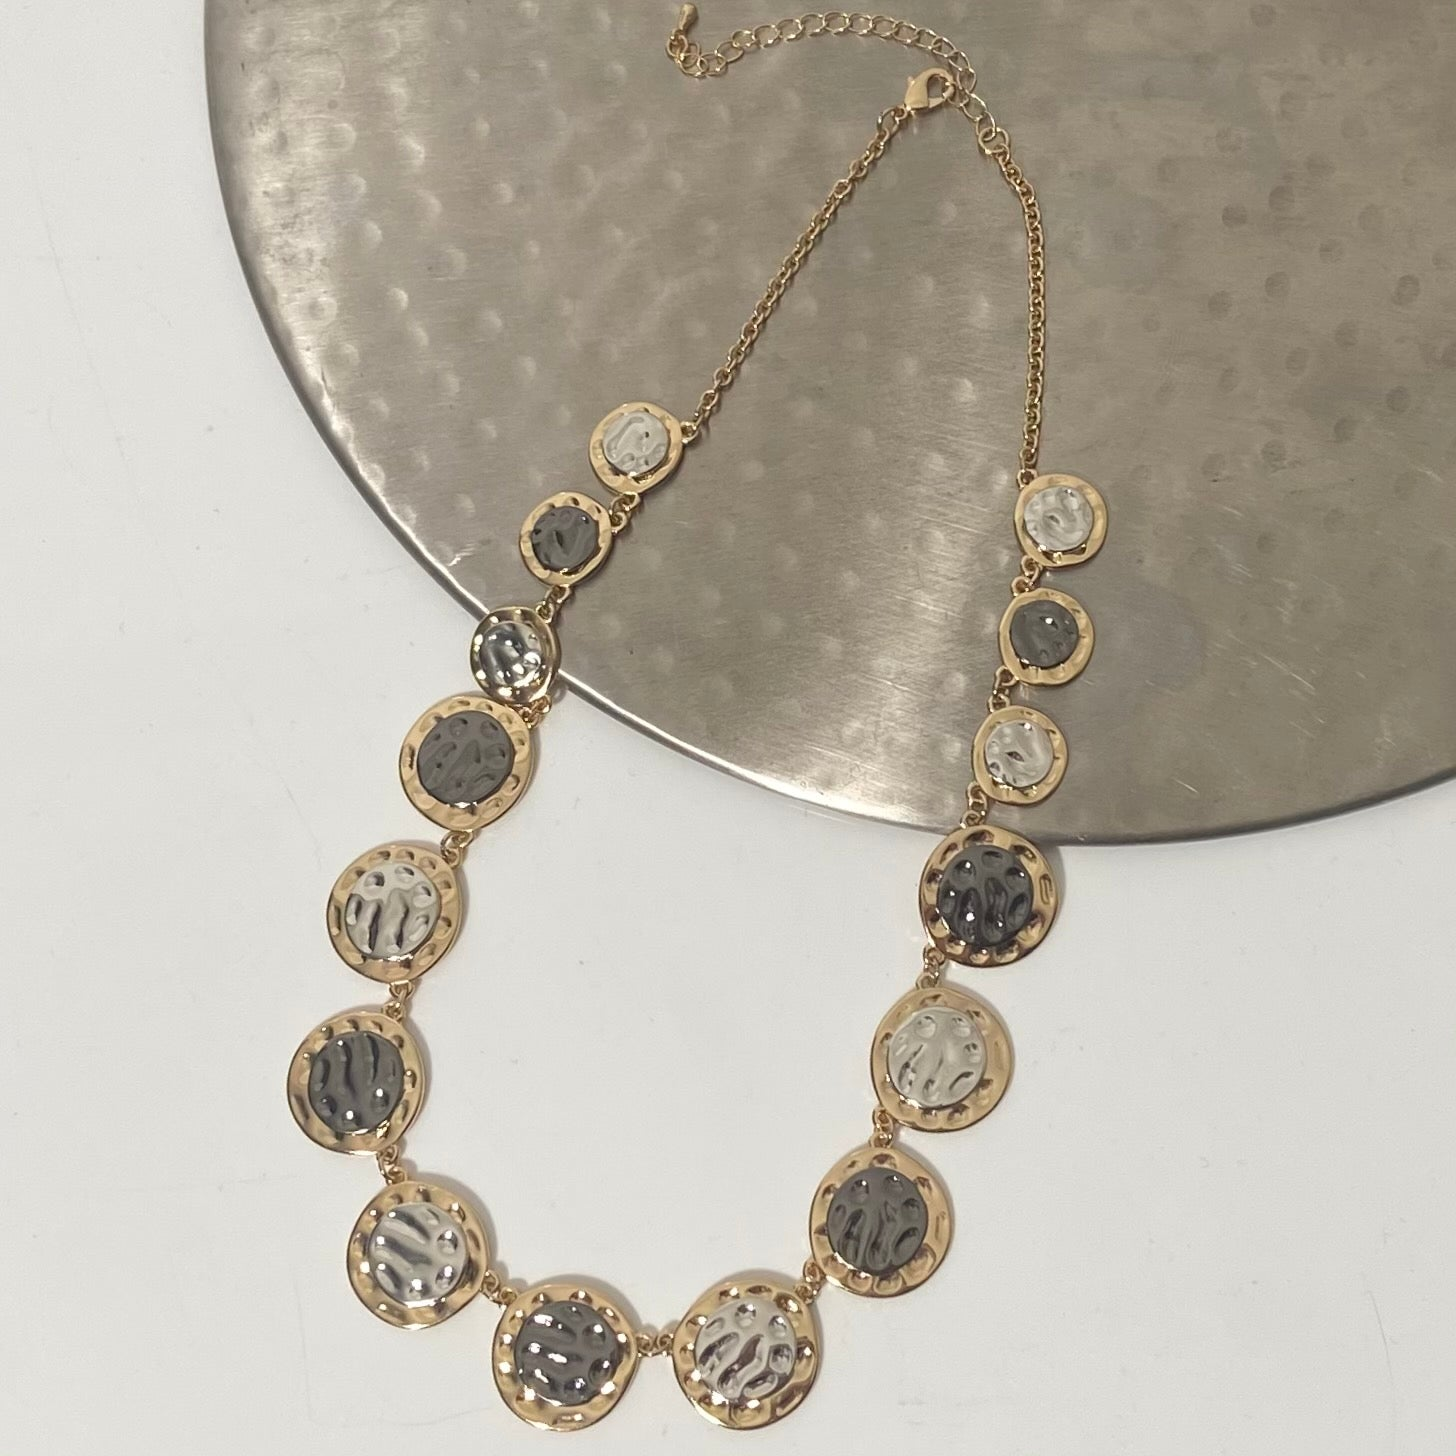 Short necklace, with circular stations featuring silver, gold and gunmetal tones